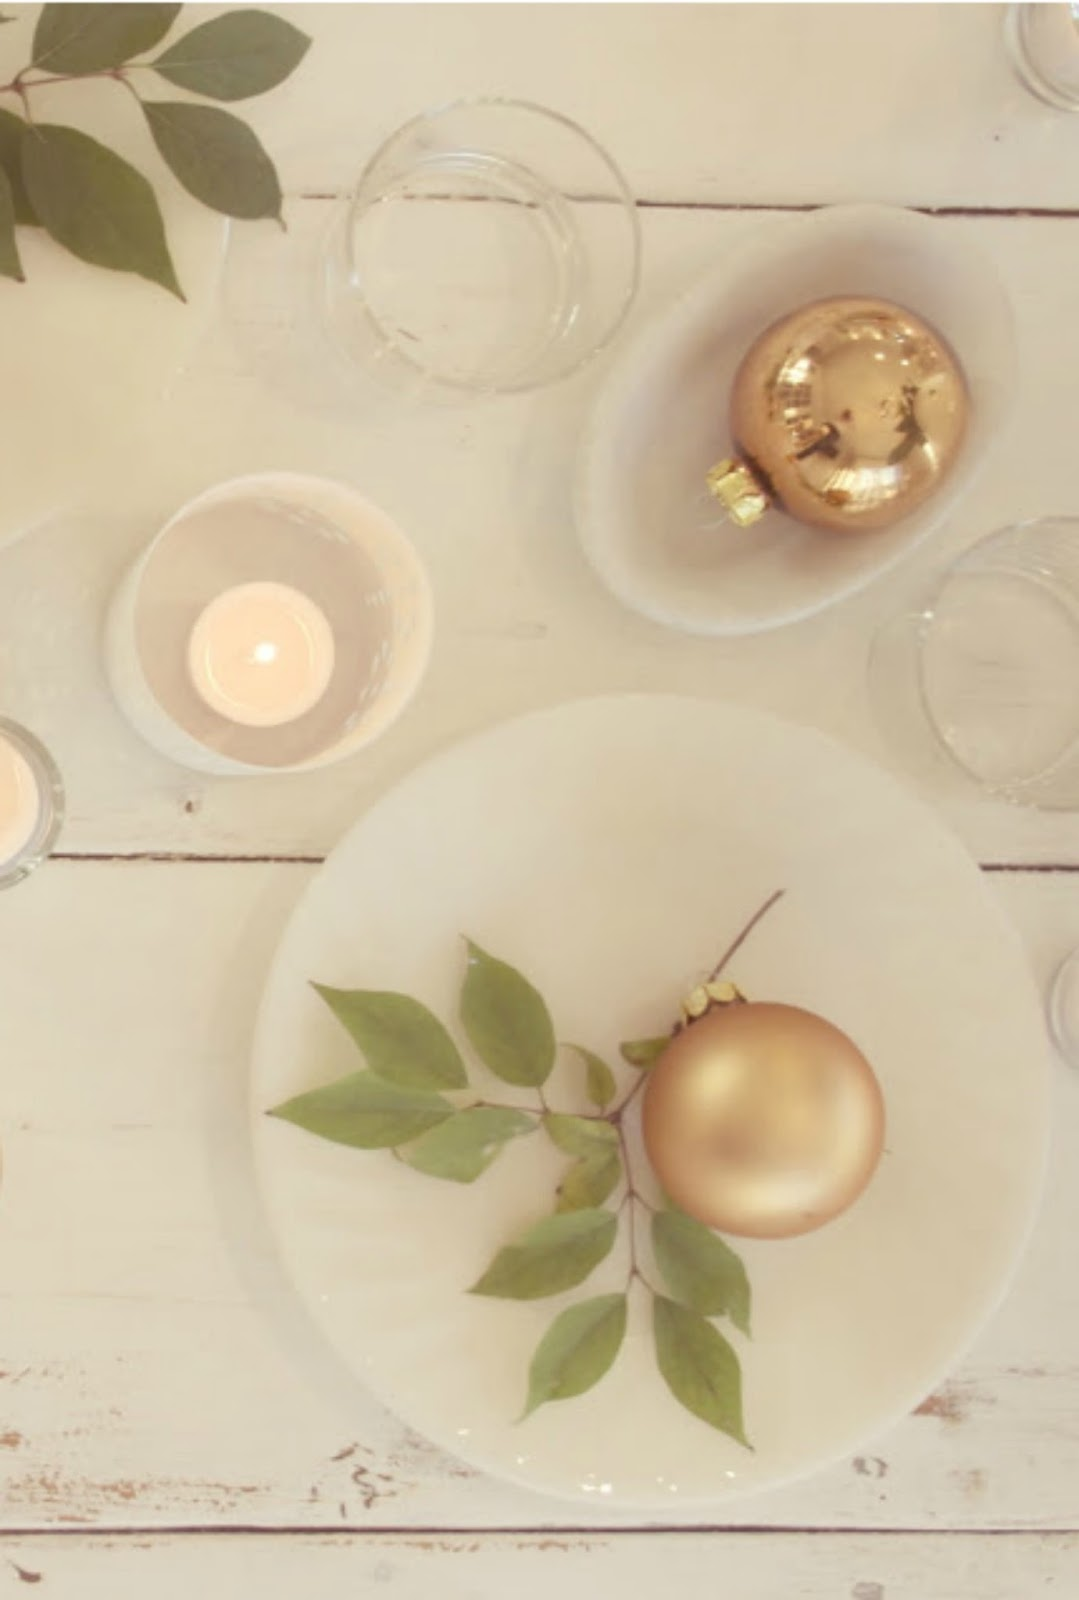 White milk glass, gold ball ornaments, and fresh greenery for modern #farmhouseChristmas tablescape by Hello Lovely Studio